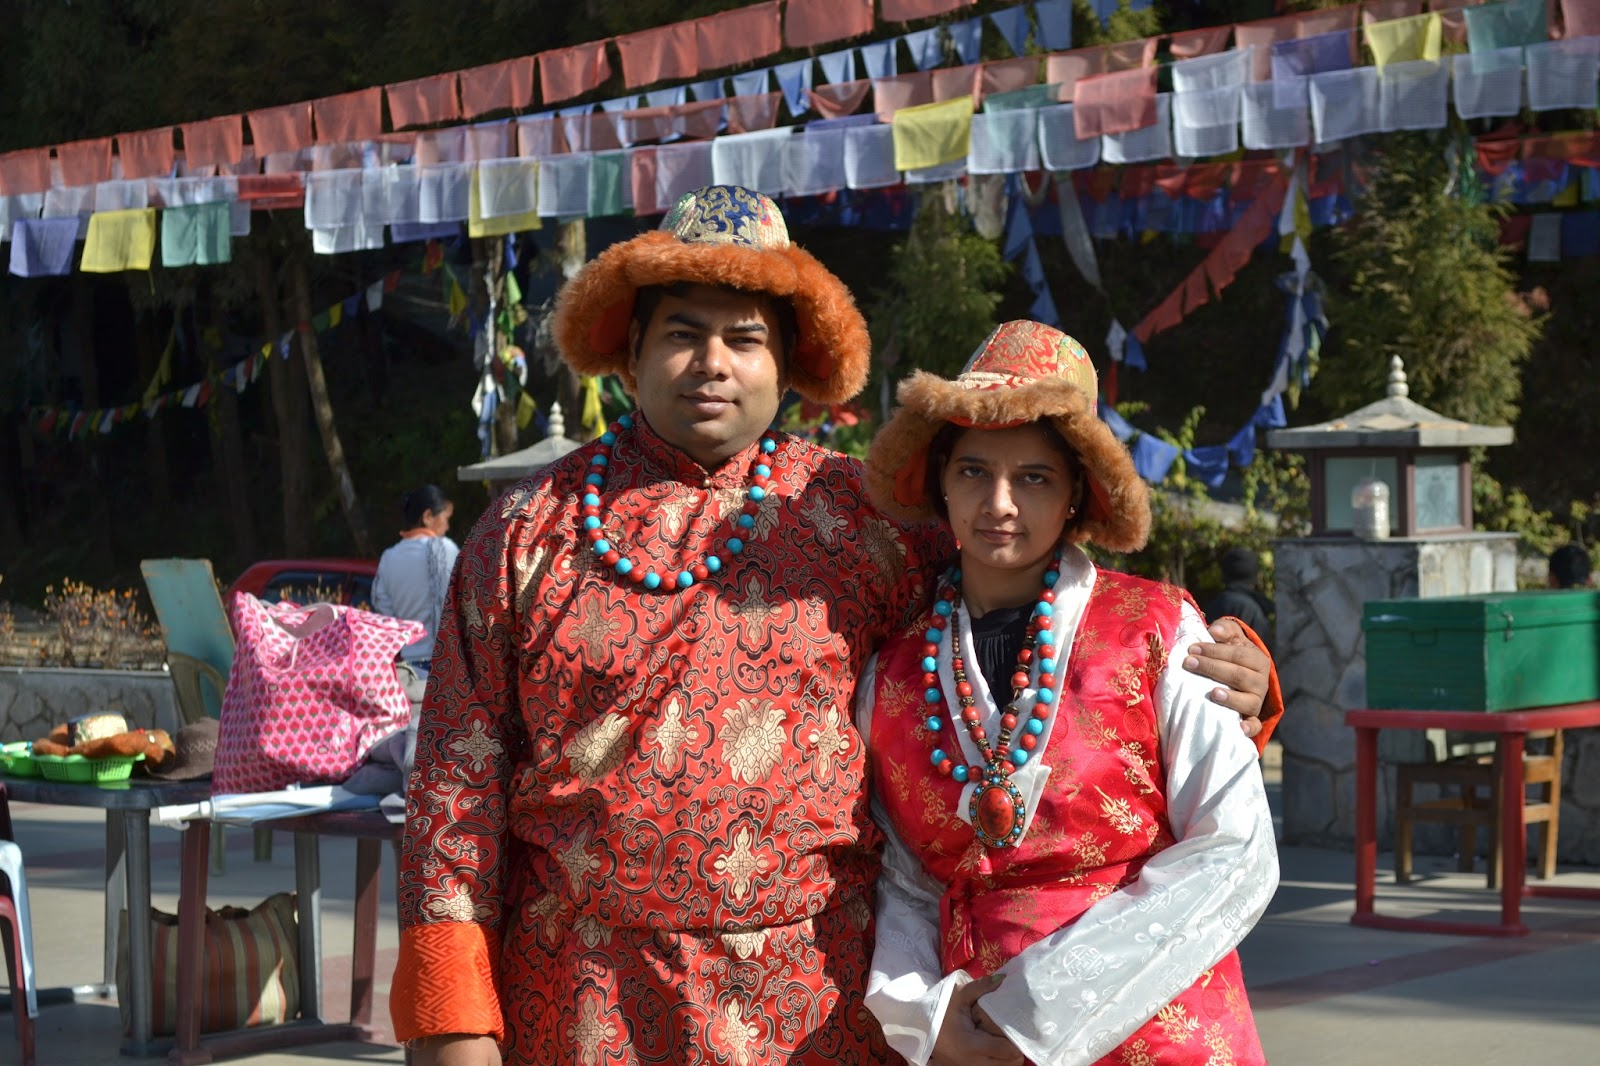 My wife and me in traditional dress of sikkim